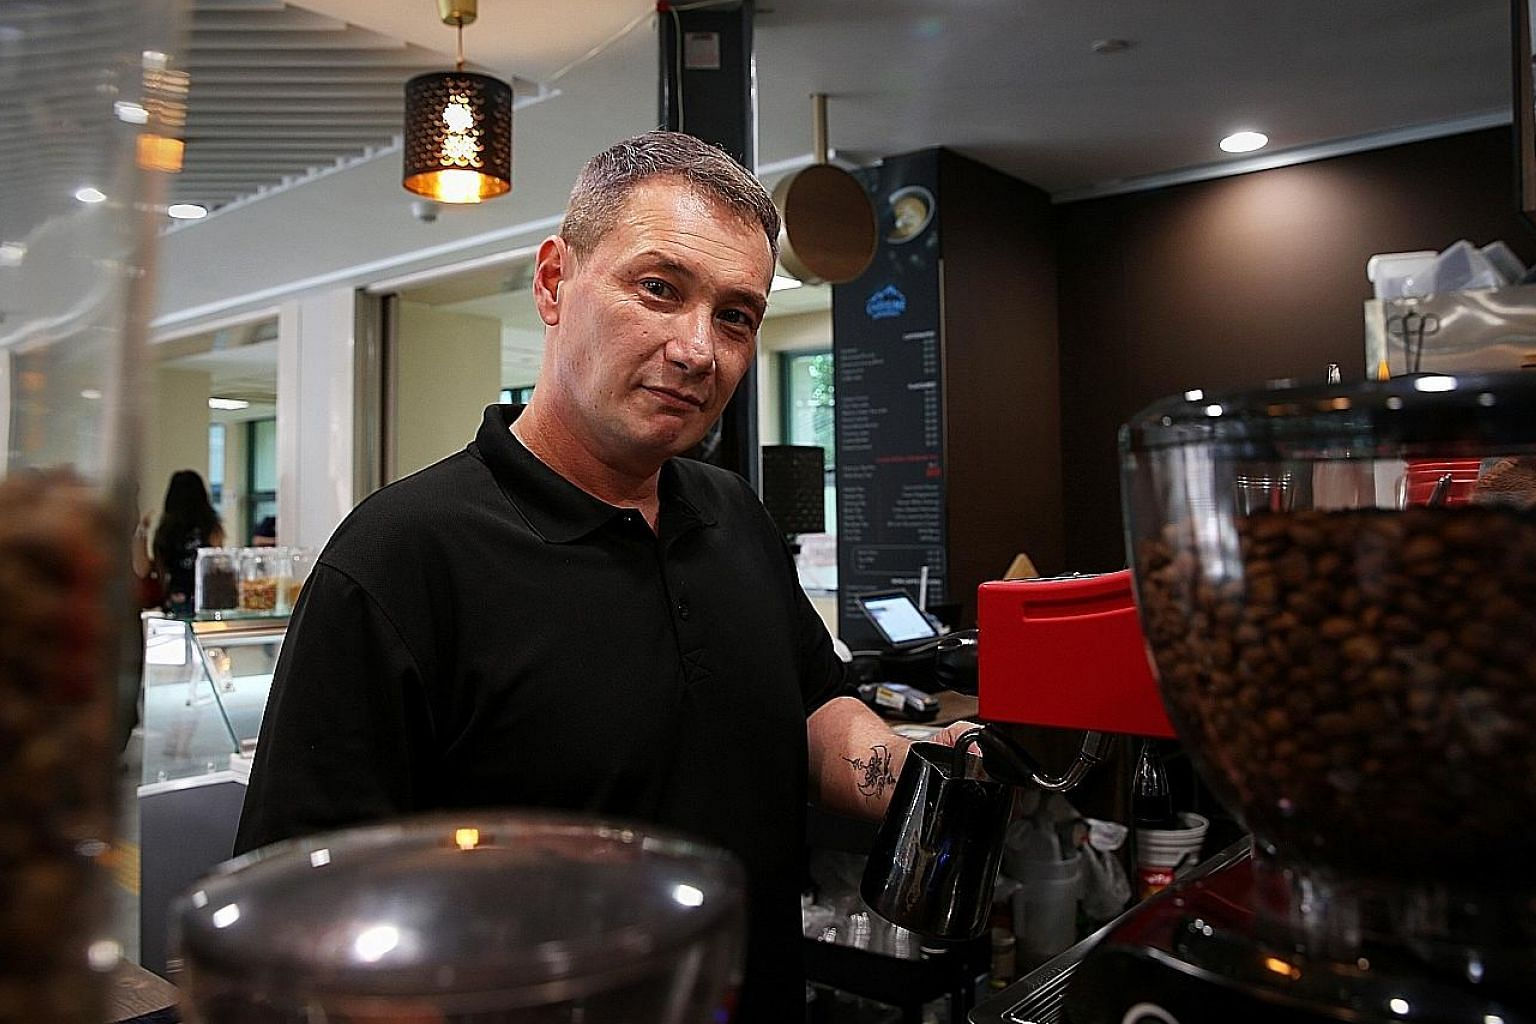 Mr Bruce Mathieu is a former drug offender who now works at The Caffeine Experience, a social enterprise that hires ex-offenders. A tattoo on his left forearm has his daughter's name, Beatrix, on it. It serves as a reminder to him to stay clean, as h